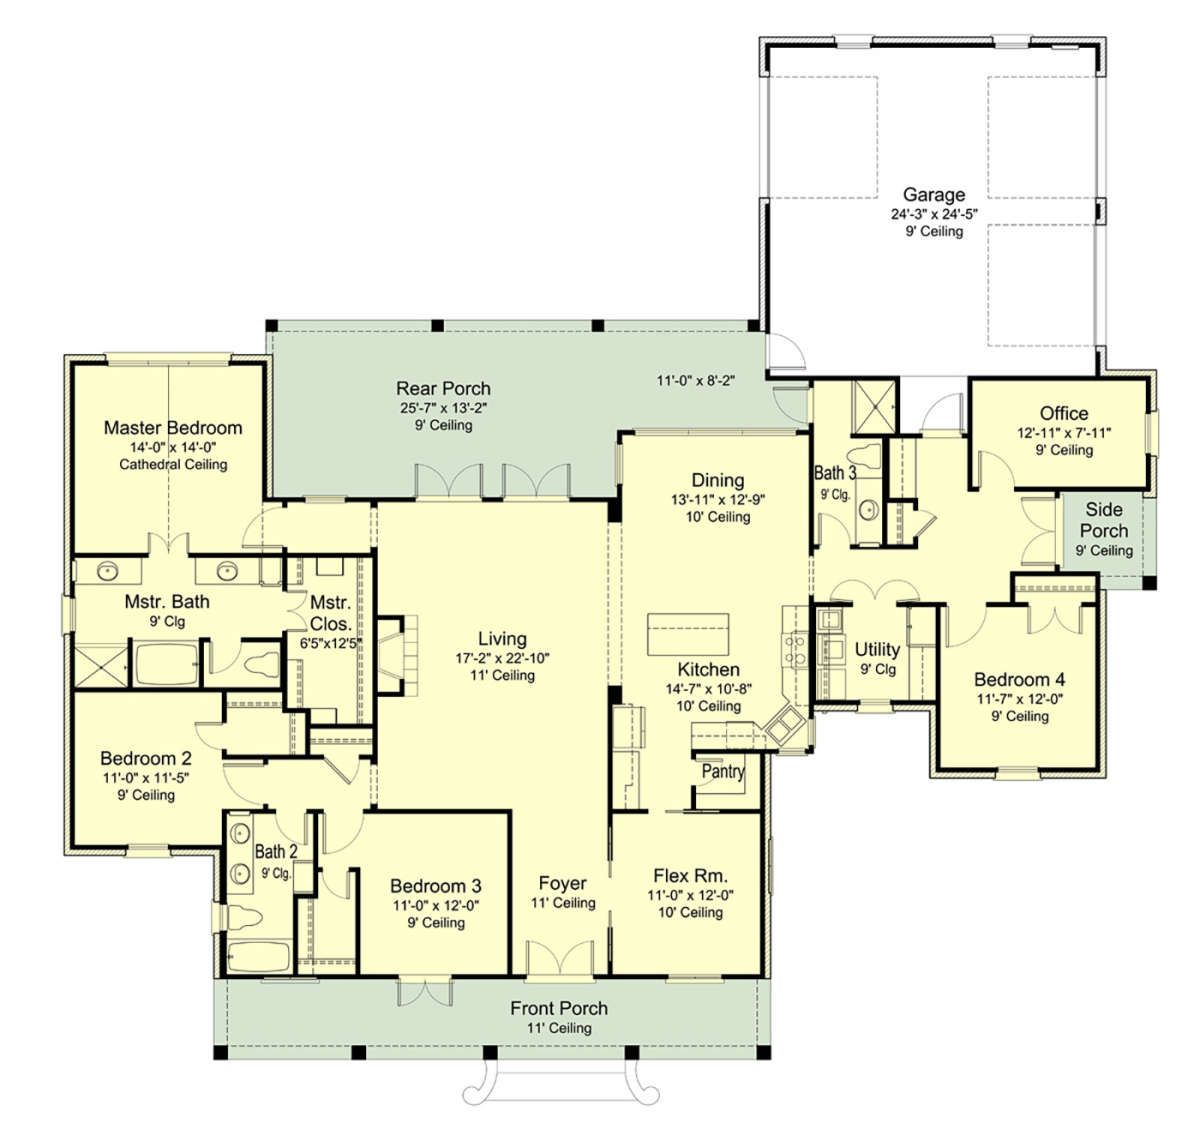 House Plan 7516 00048 French Country Plan 2 671 Square Feet 4 Bedrooms 3 Bathrooms In 2021 Garage Floor Plans House Plans Floor Plans